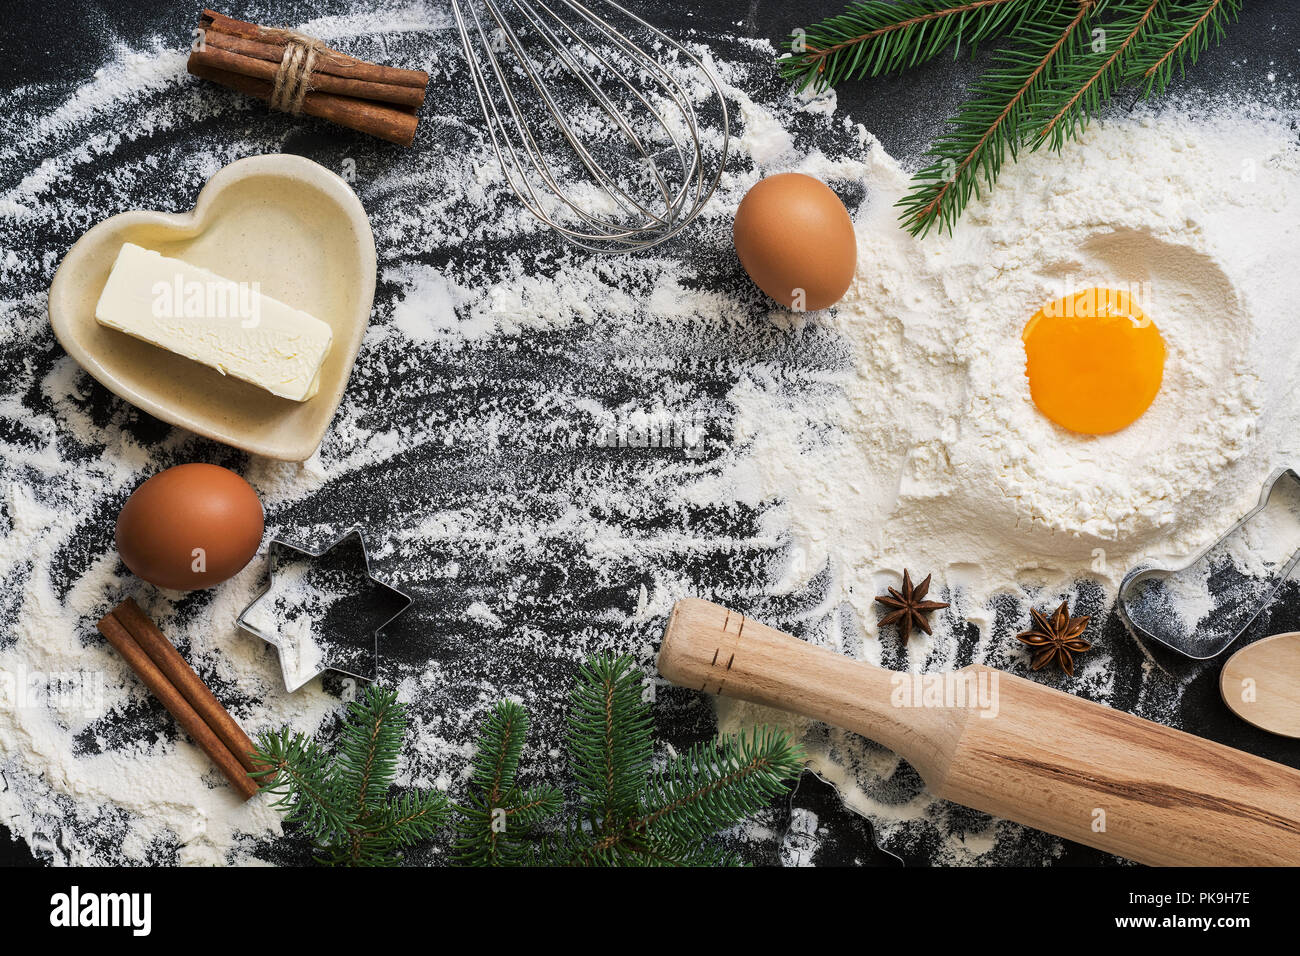 Christmas background with ingredients for baking on a black concrete background. Top view, copy space,flat lay. - Stock Image